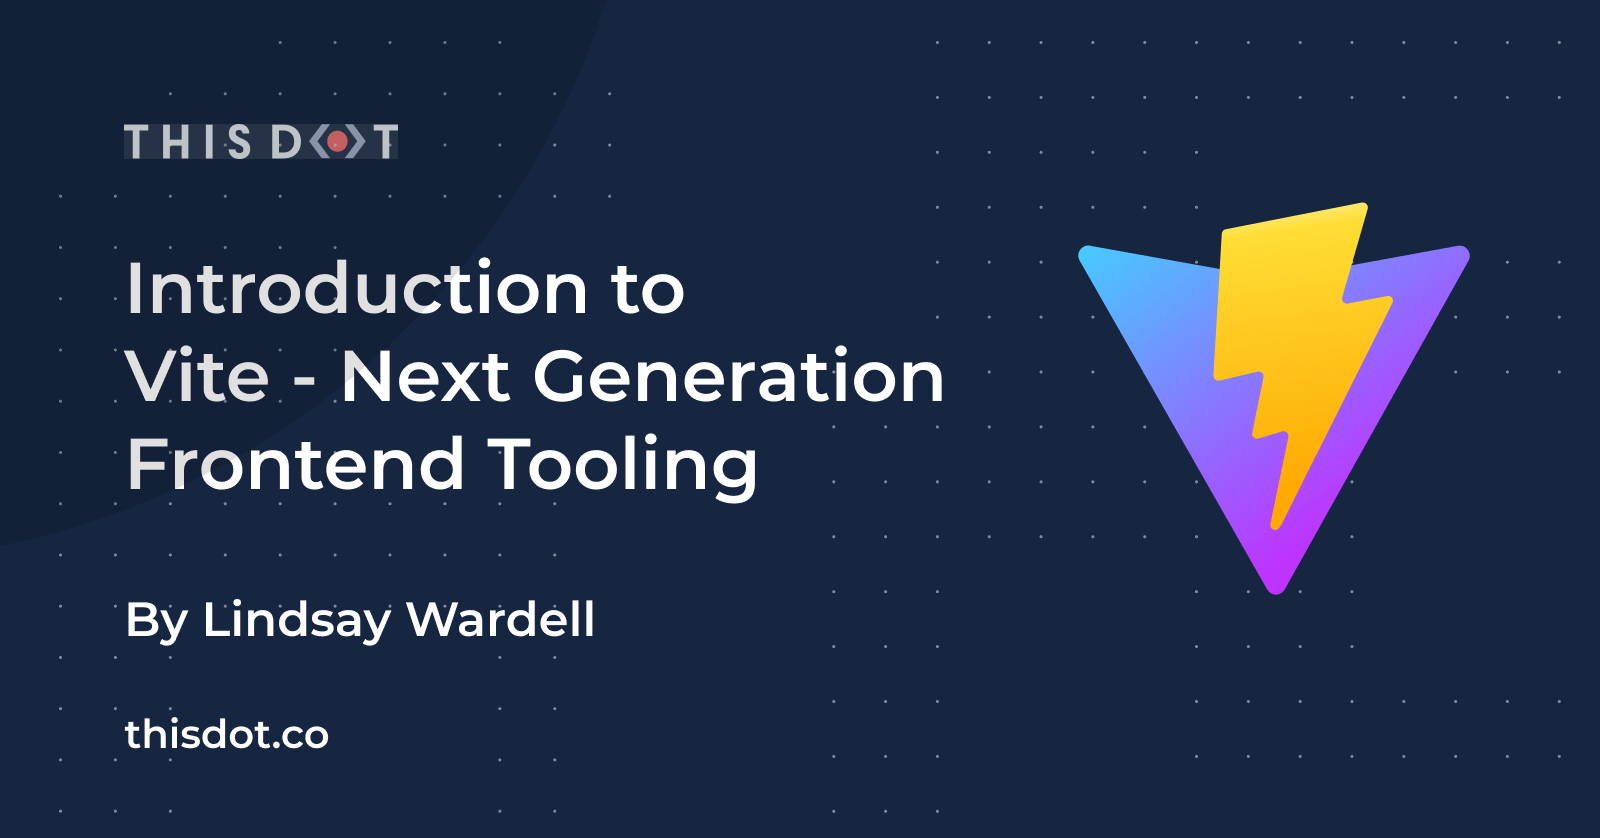 Introduction to Vite - Next Generation Frontend Tooling